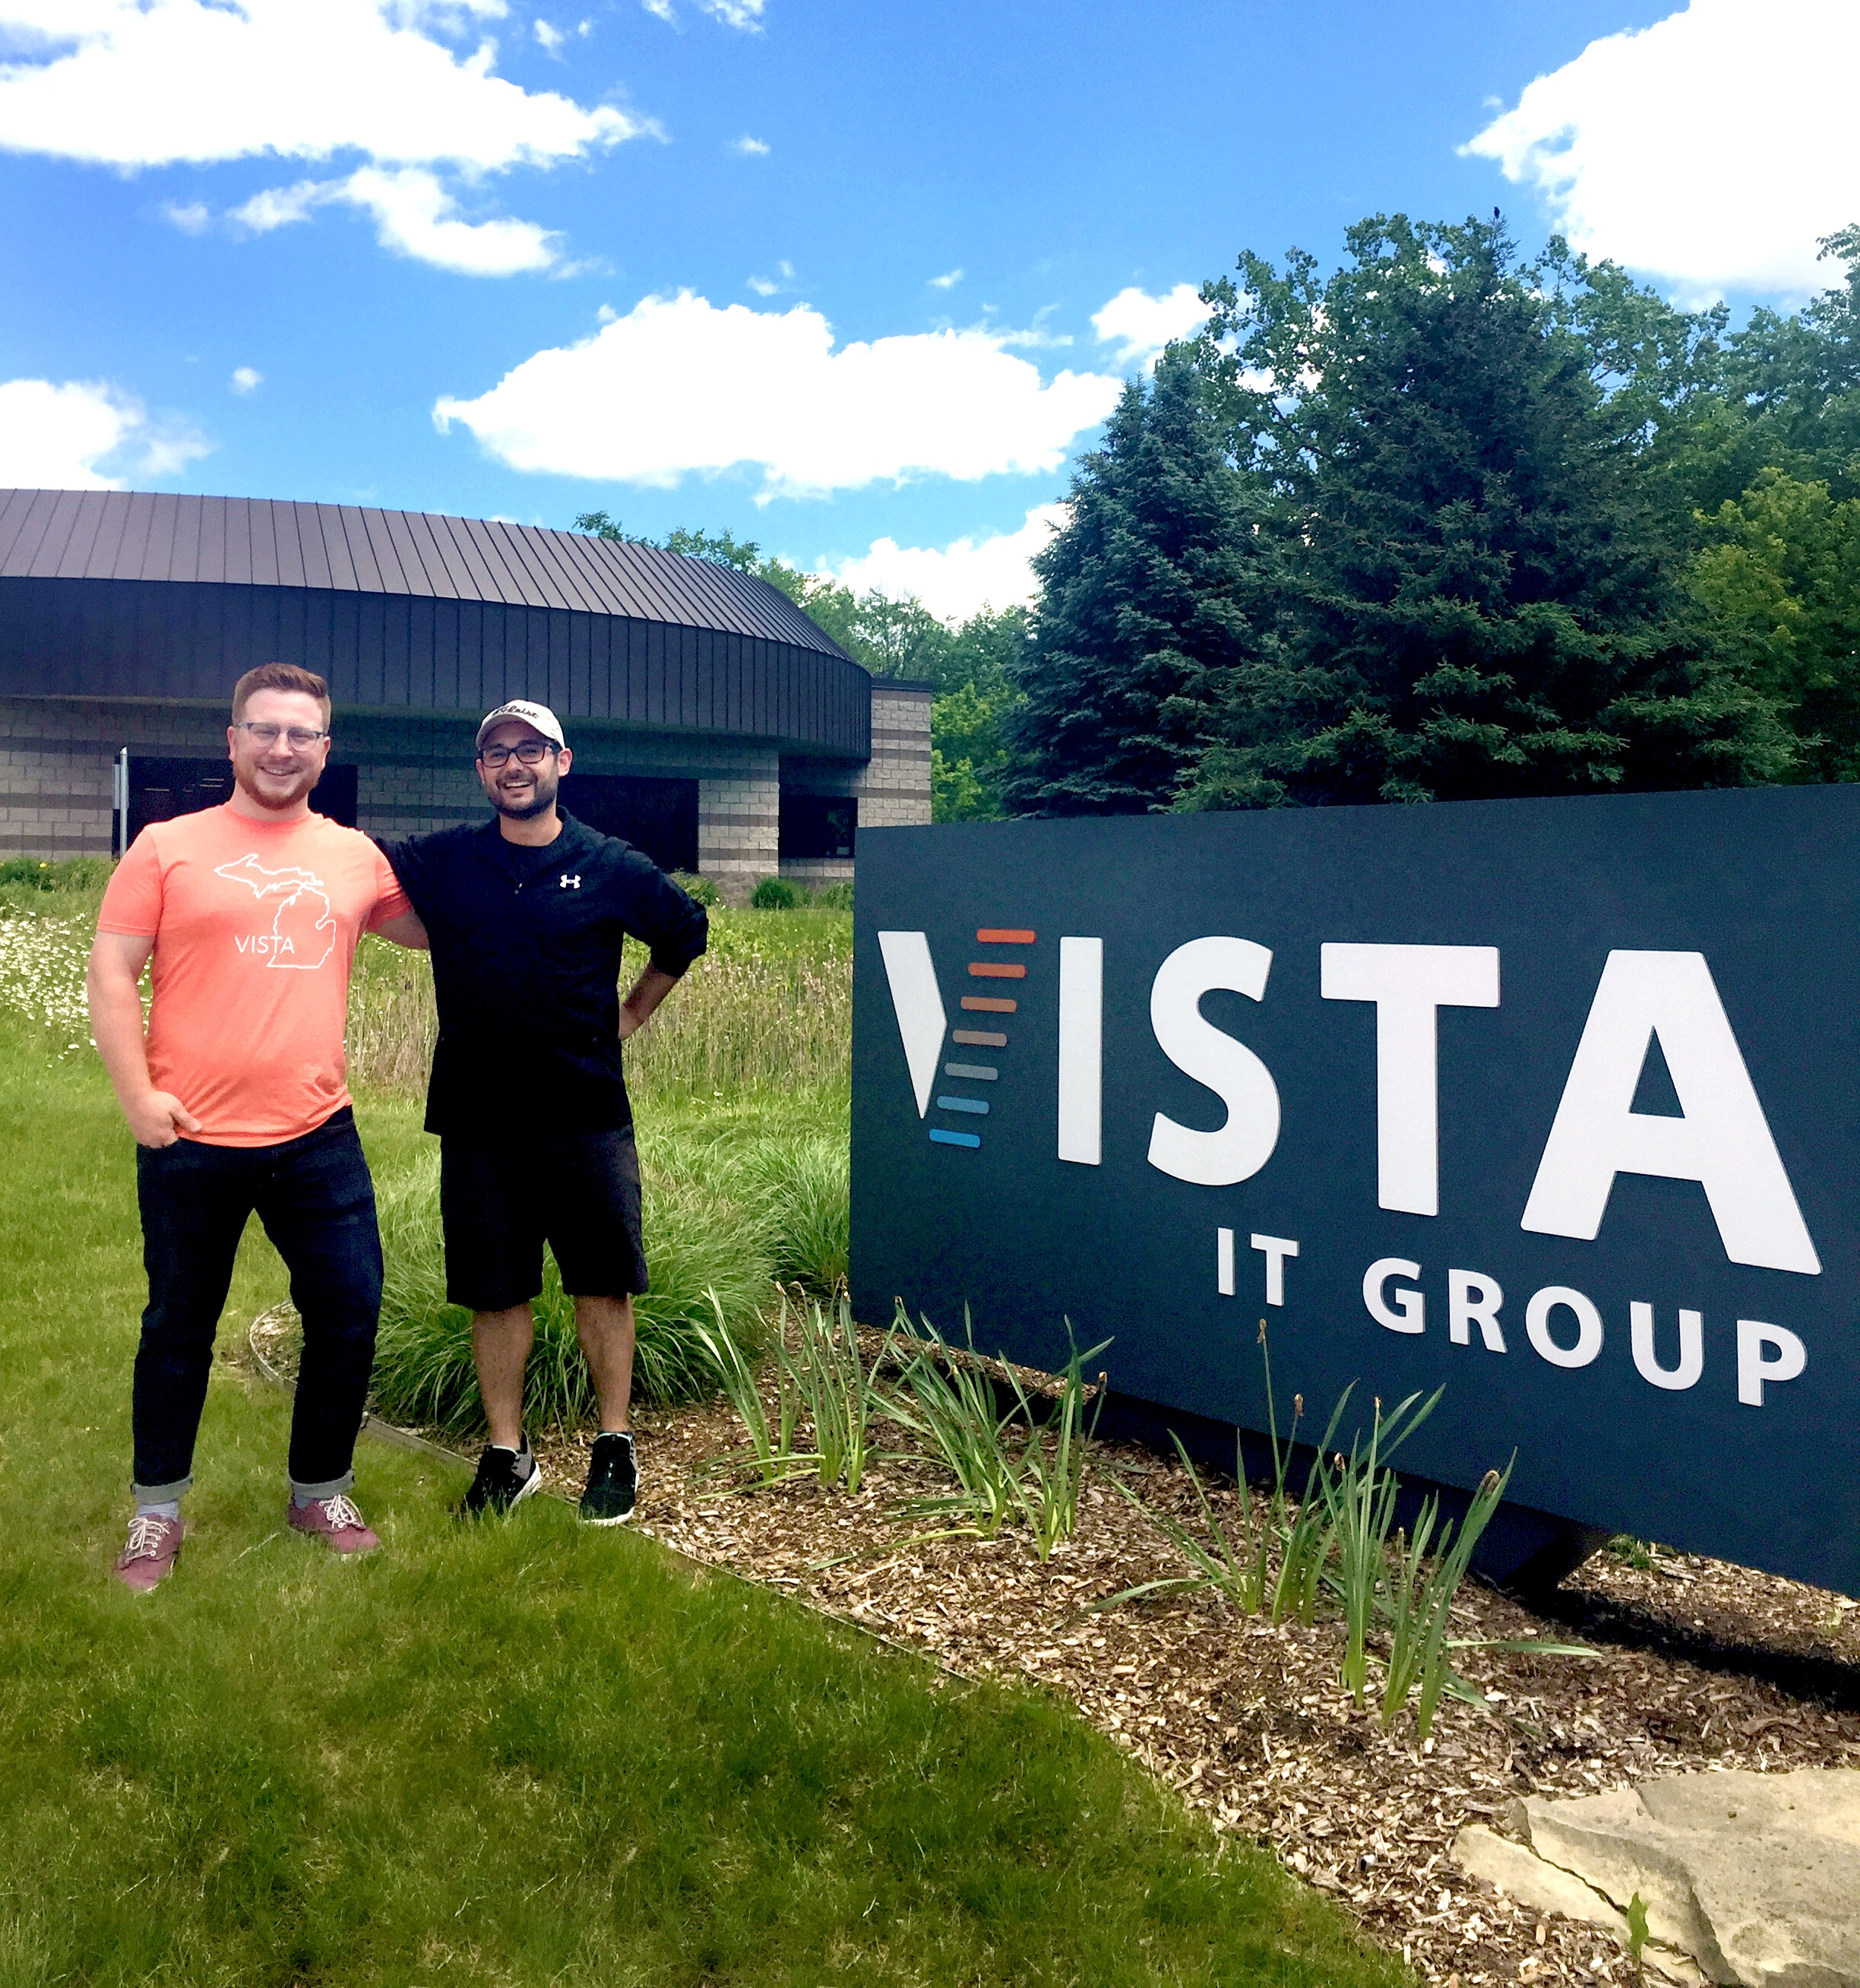 Vista New Hires - Dom and Jake